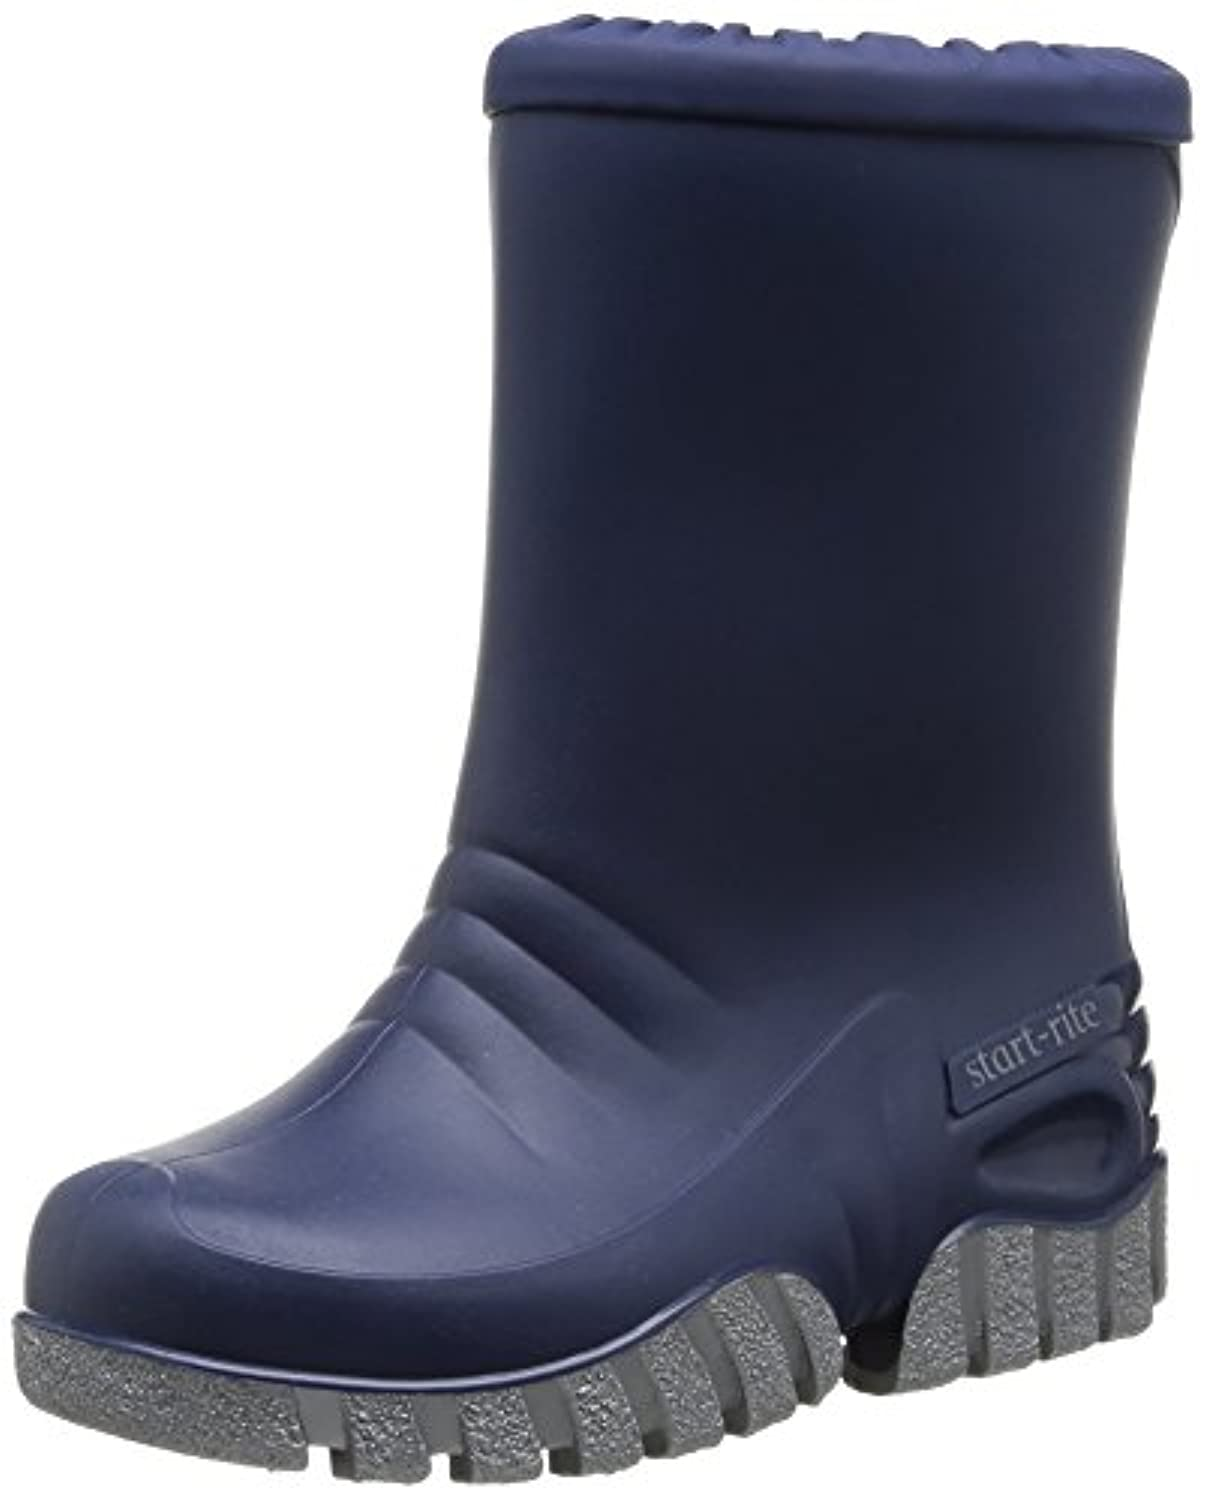 Startrite Baby Mudbuster Blue Wellington Boots 4 / 20 F Navy